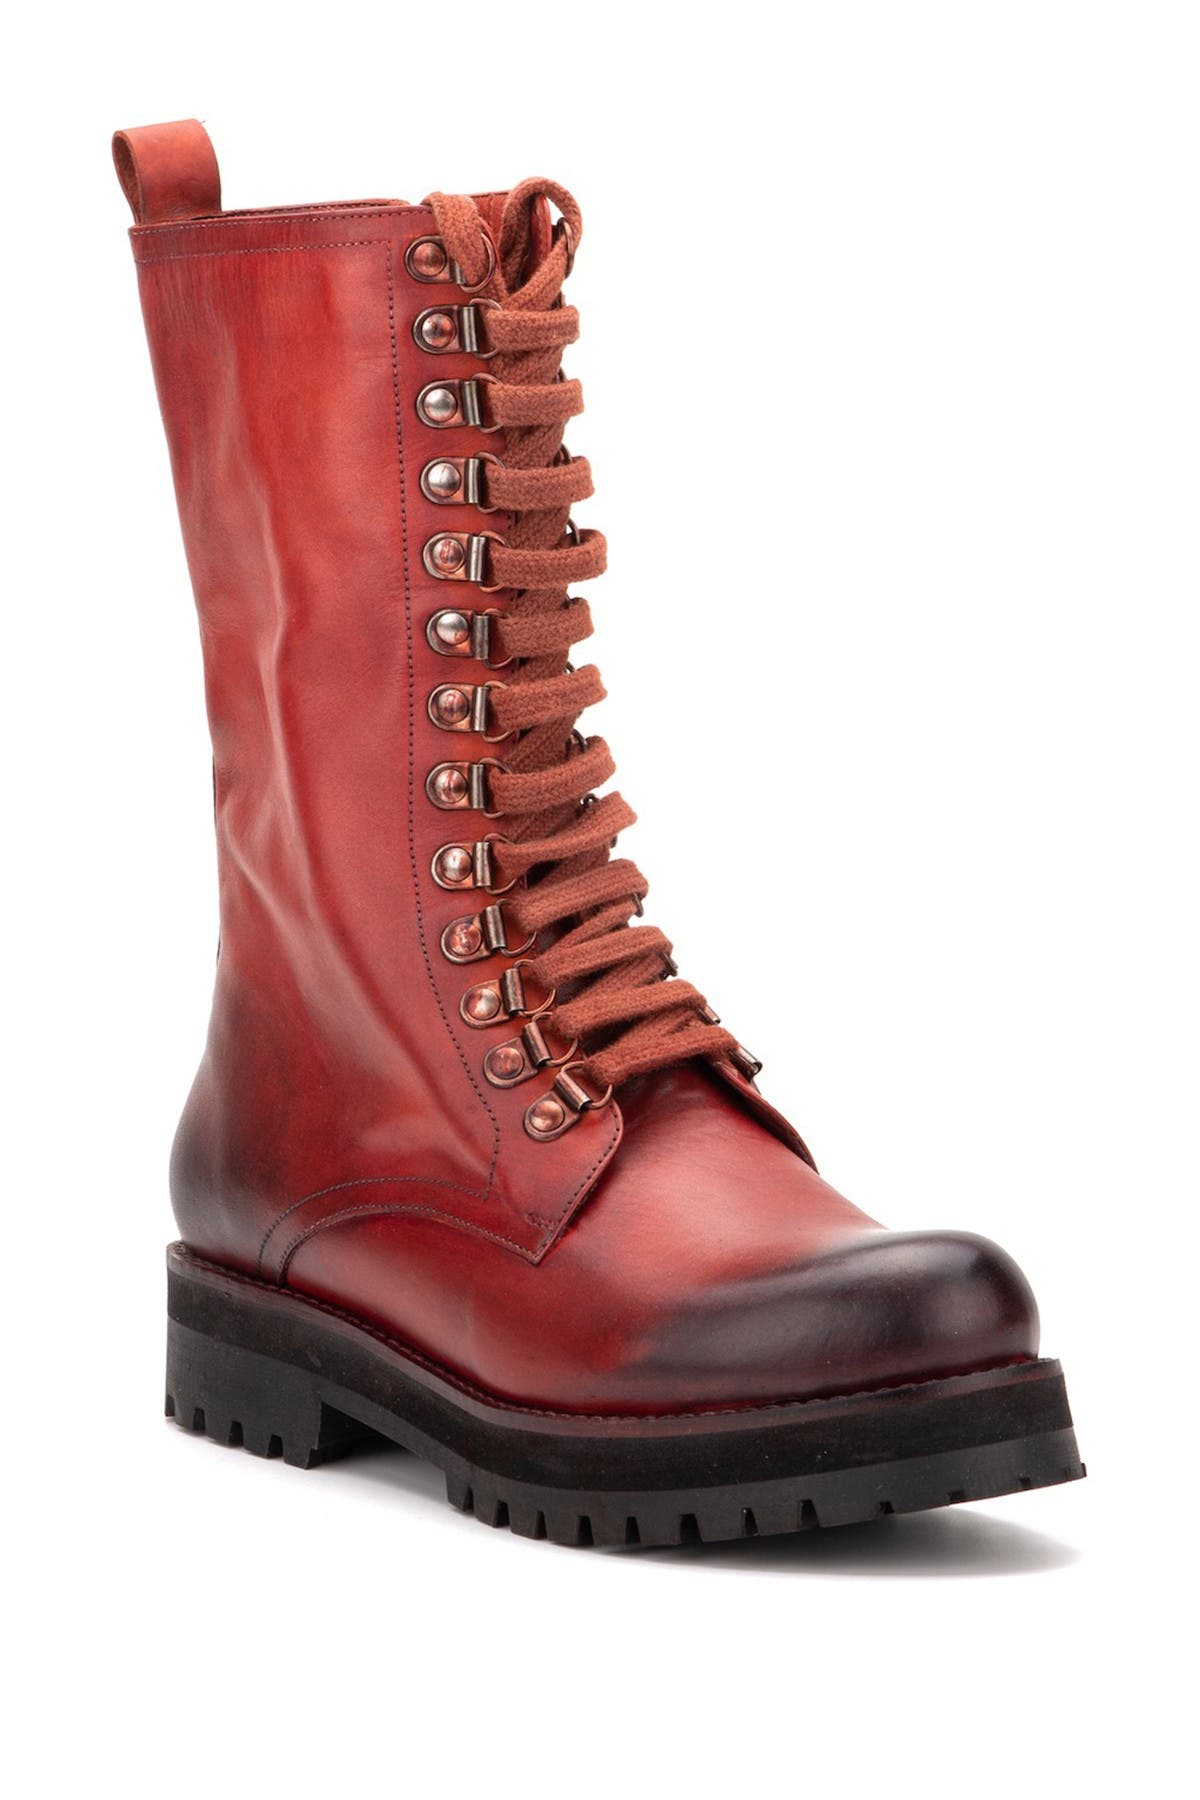 Image of Vintage Foundry Cherry Tall Leather Lace-Up Boot